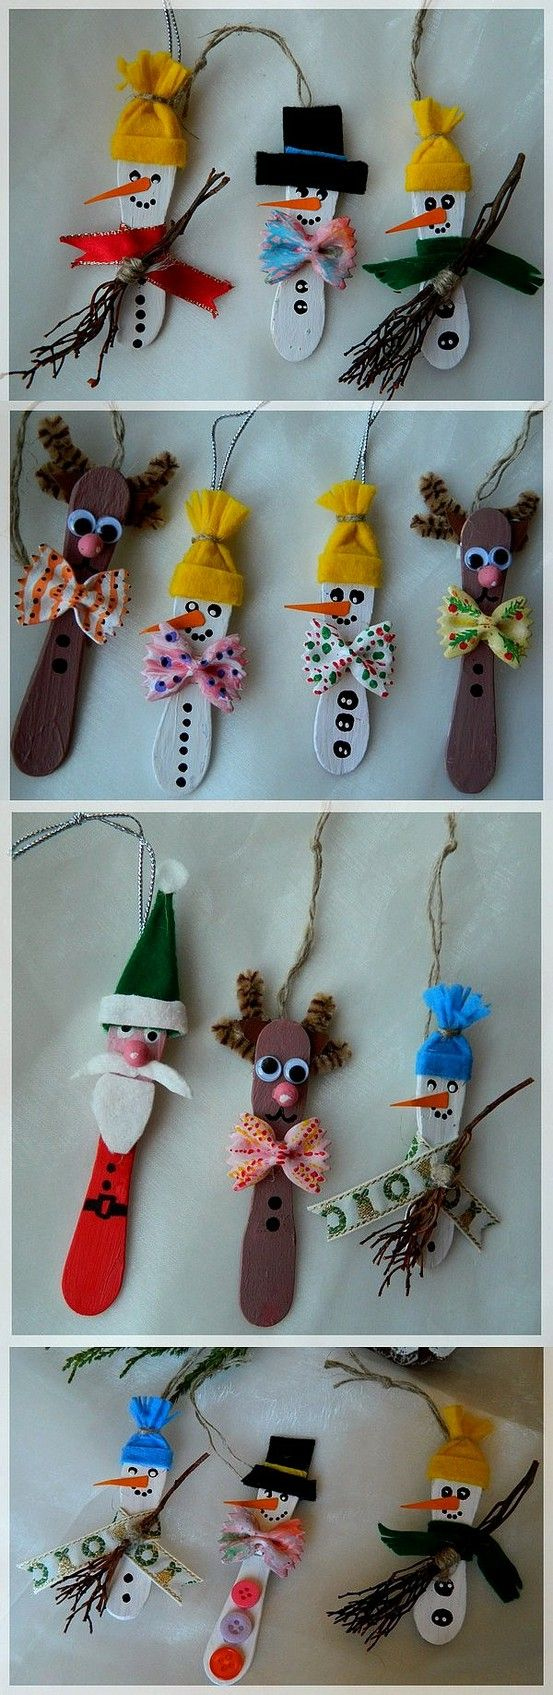 Make quick and easy ornaments out of mini wooden ice cream sticks  tongue depressors or popsicle sticks.